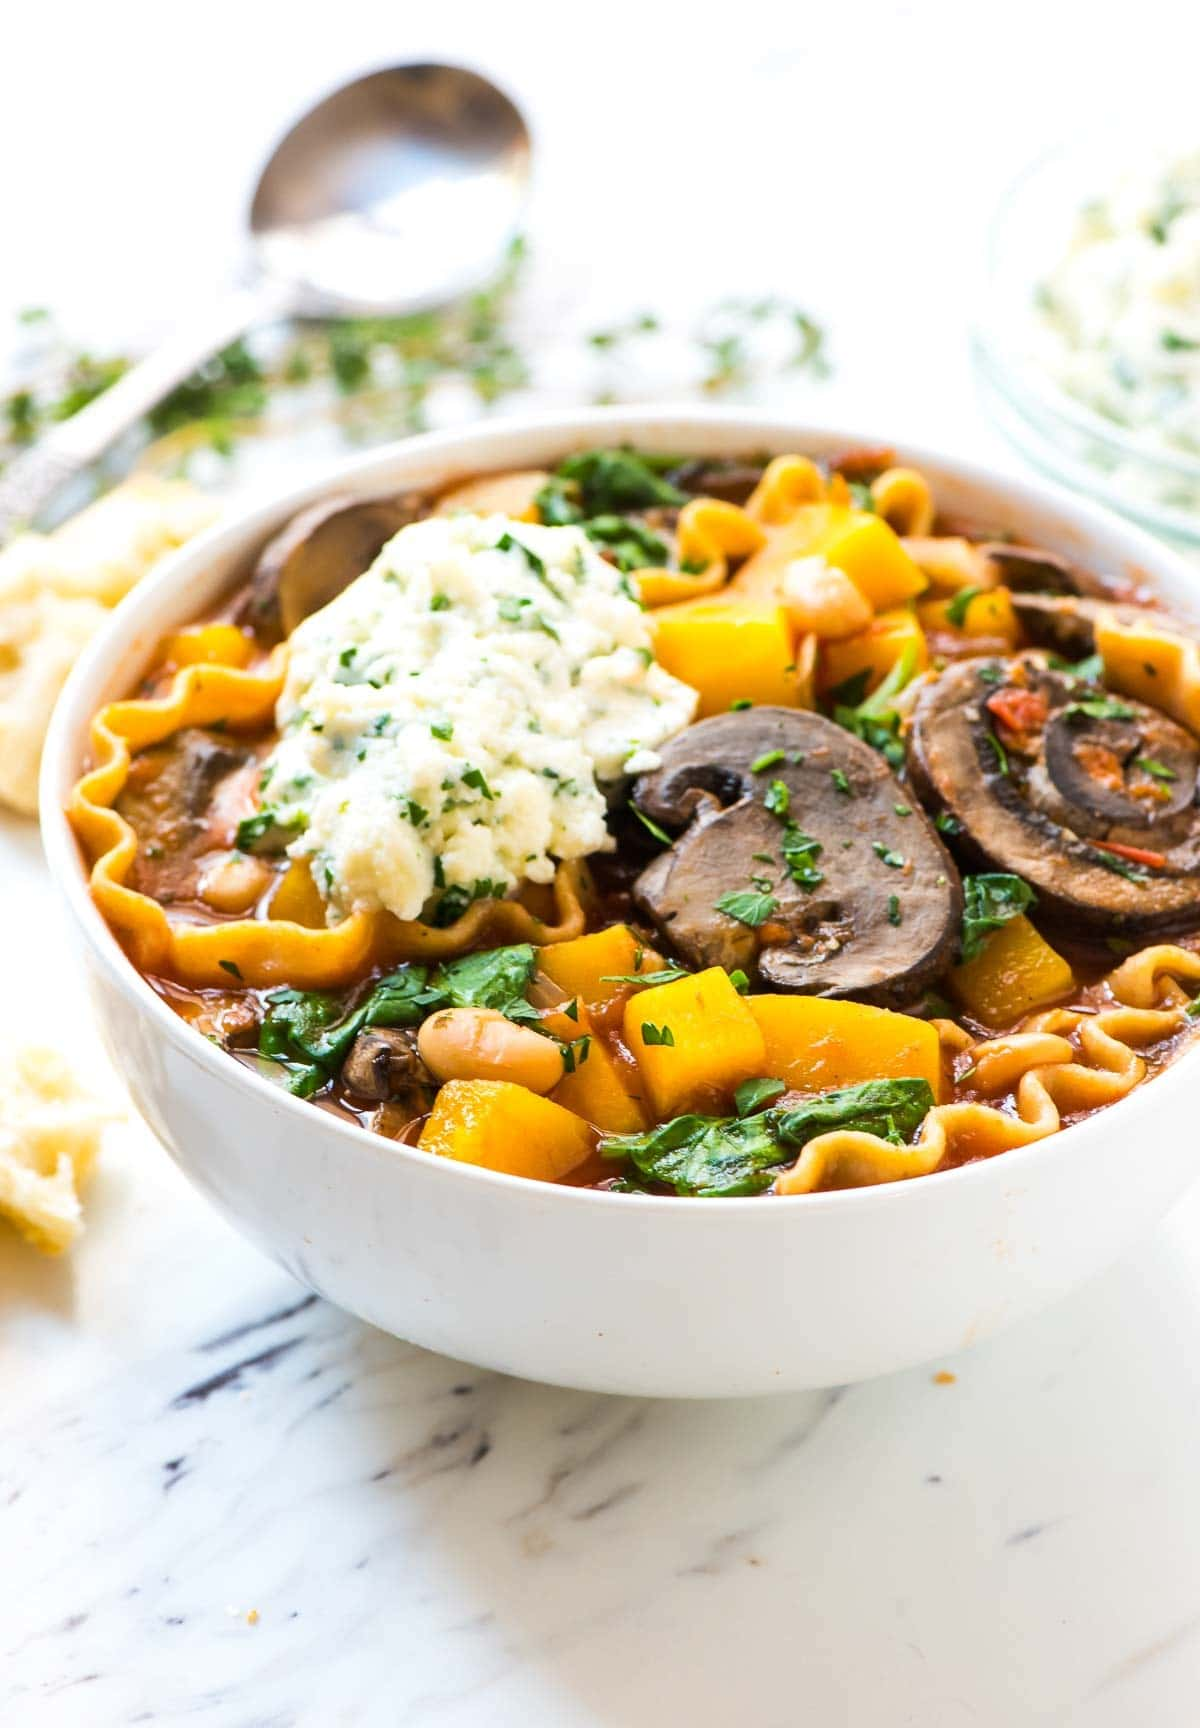 Slow Cooker Vegetarian Lasagna Soup. DELICIOUS and so much easier than regular lasagna! Healthy crockpot lasagna soup recipe with whole wheat pasta, butternut squash, and white beans. Recipe at wellplated.com | @wellplated